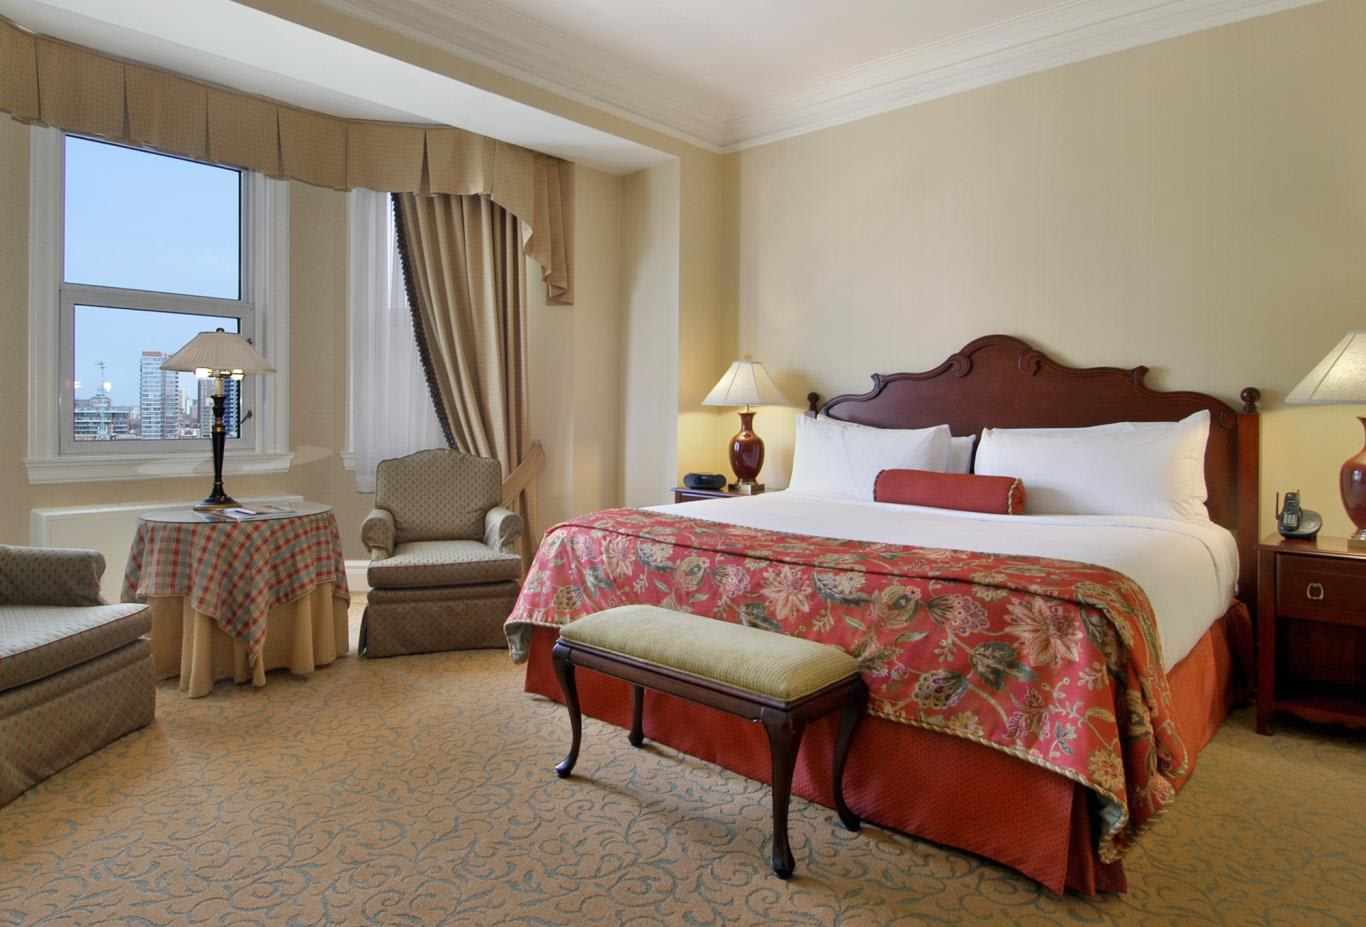 Fairmont View Room